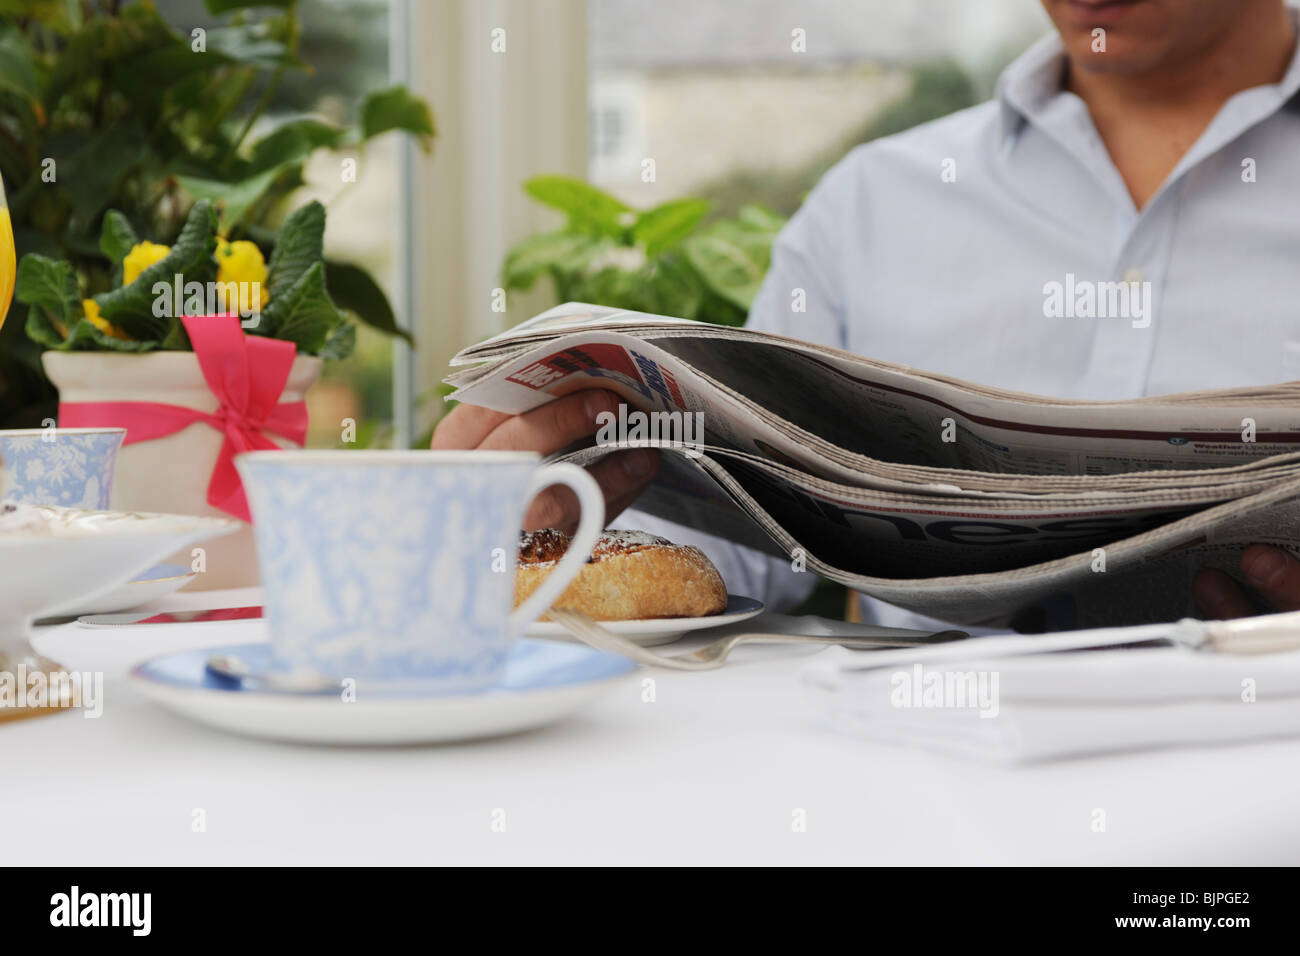 man reading paper with continental breakfast - Stock Image